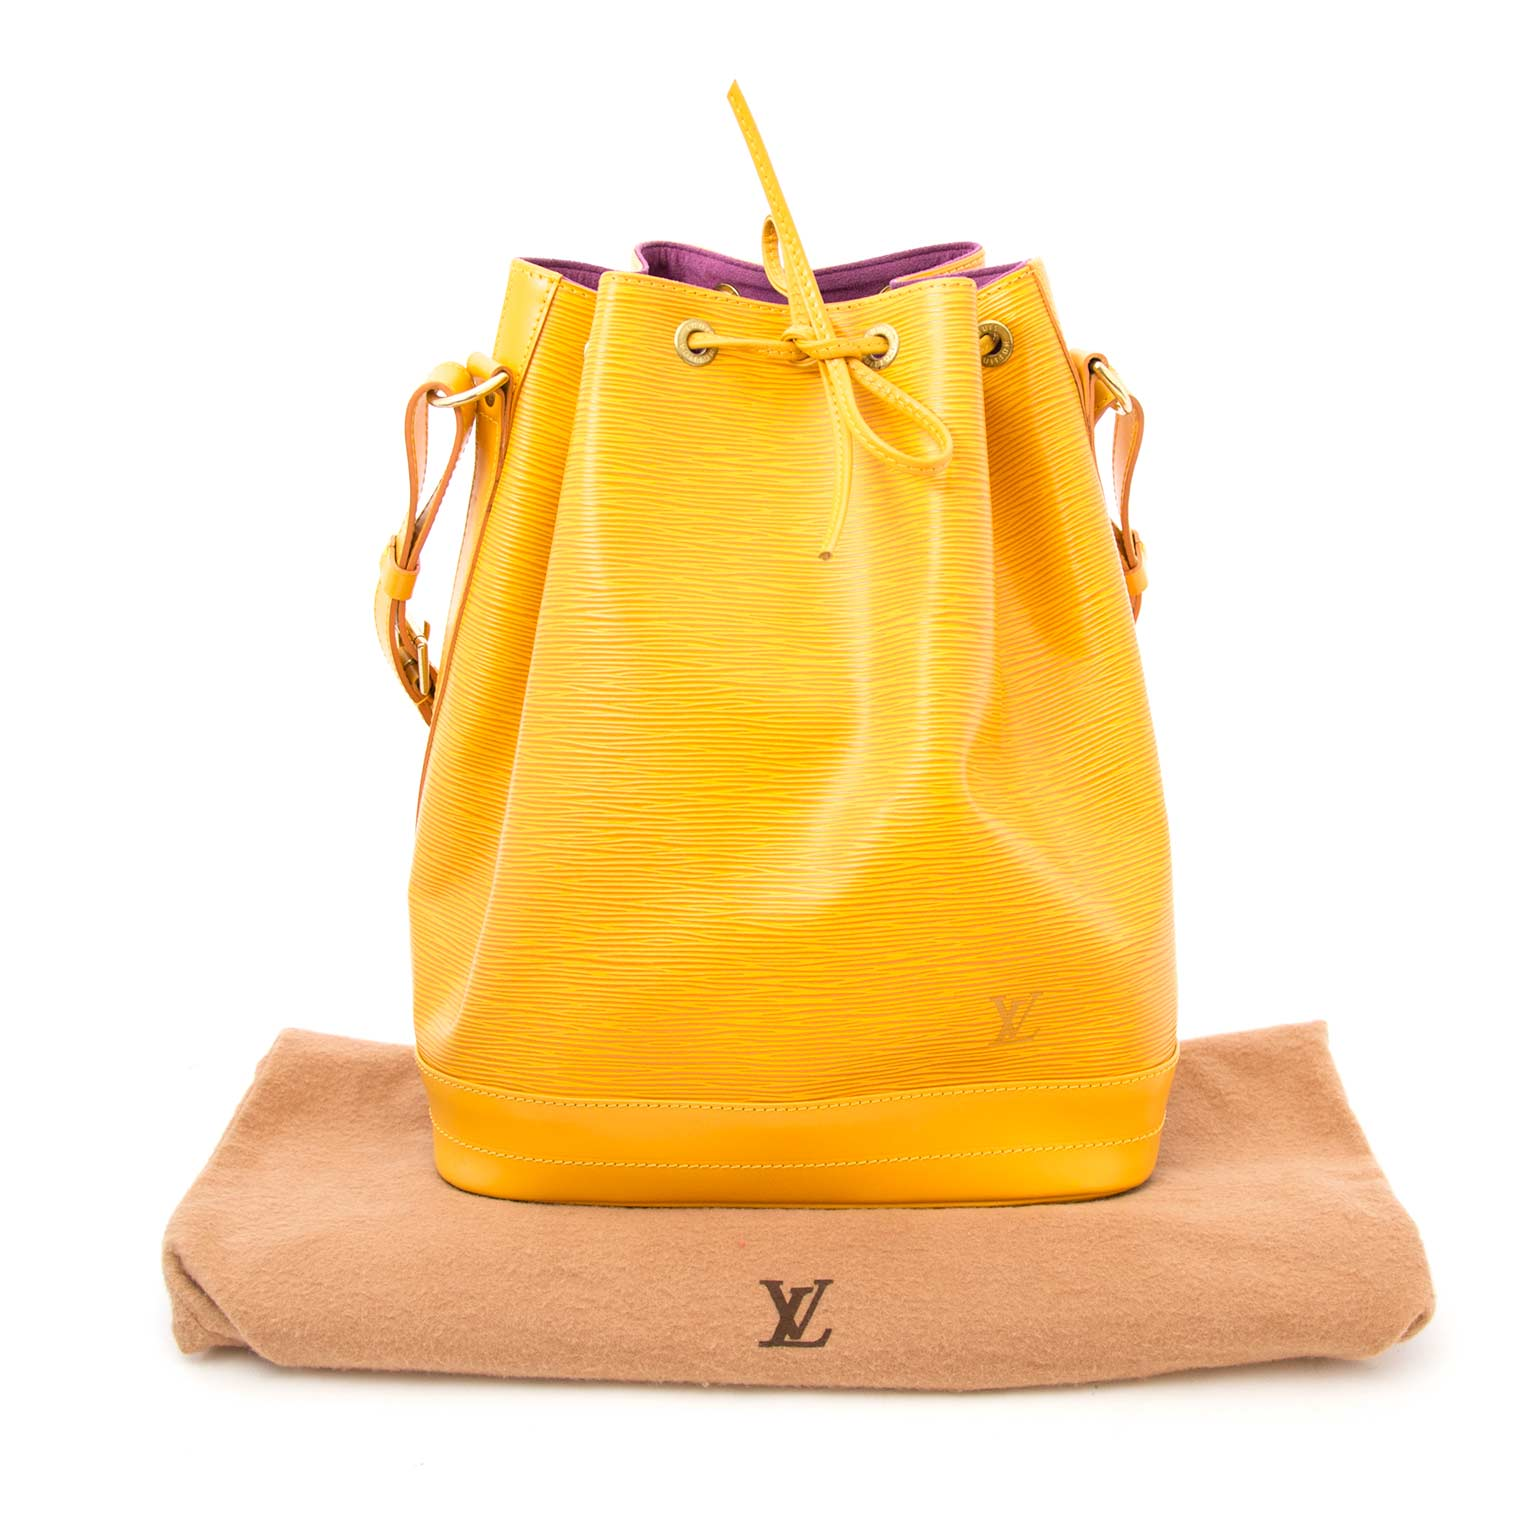 Louis Vuitton Big Noé Yellow Epi Leather Shoulder Bag